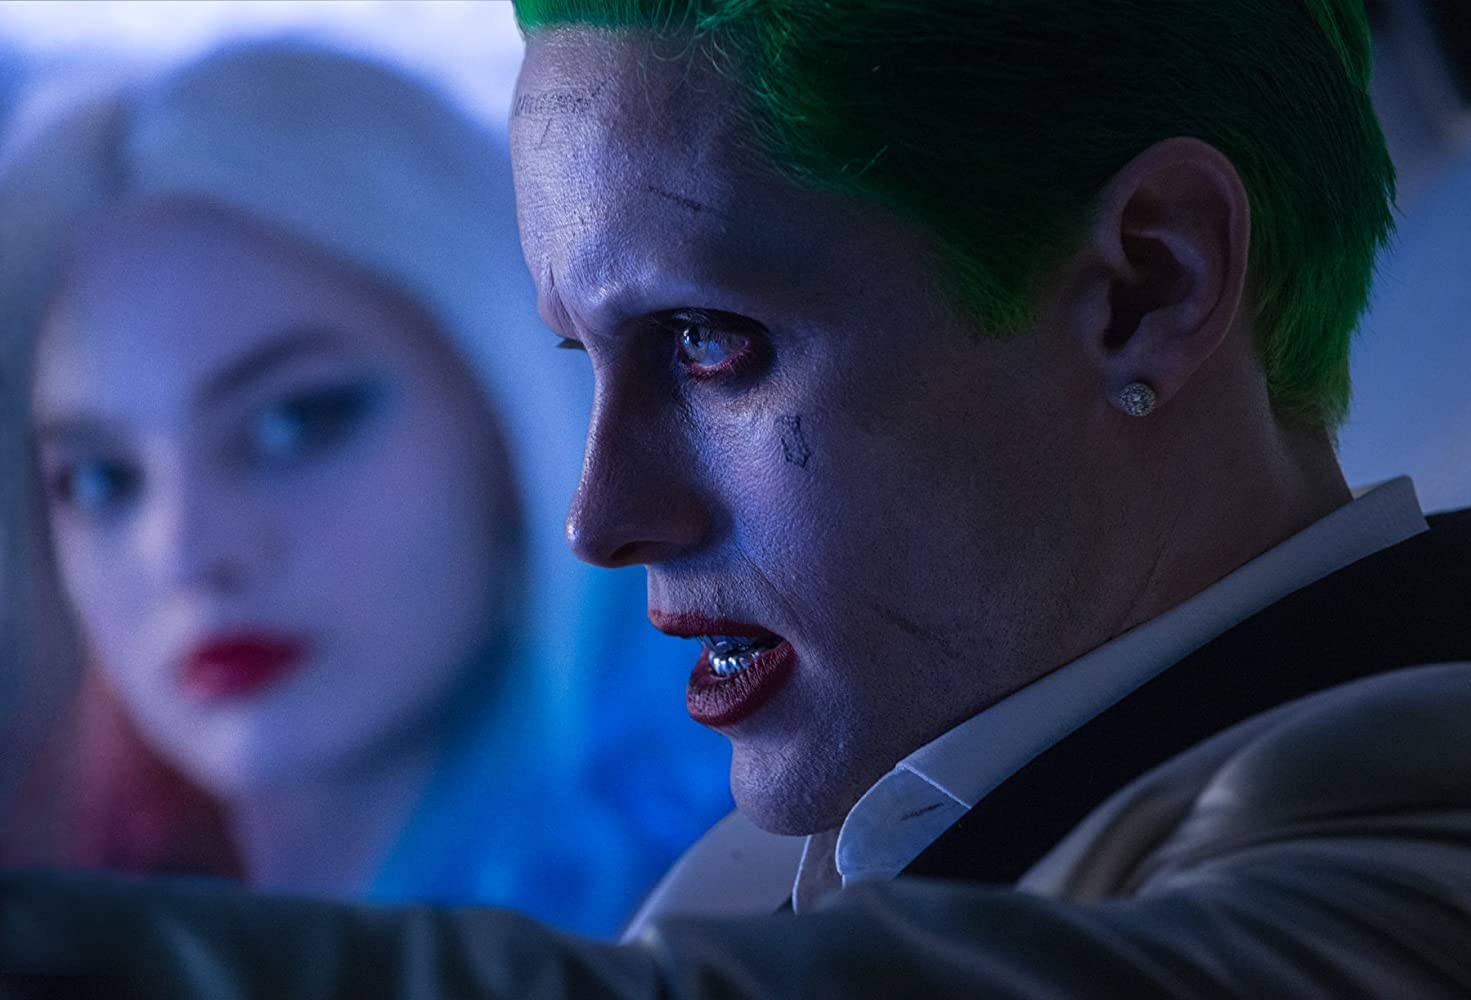 Jared Leto and Margot Robbie in Suicide Squad (2016)